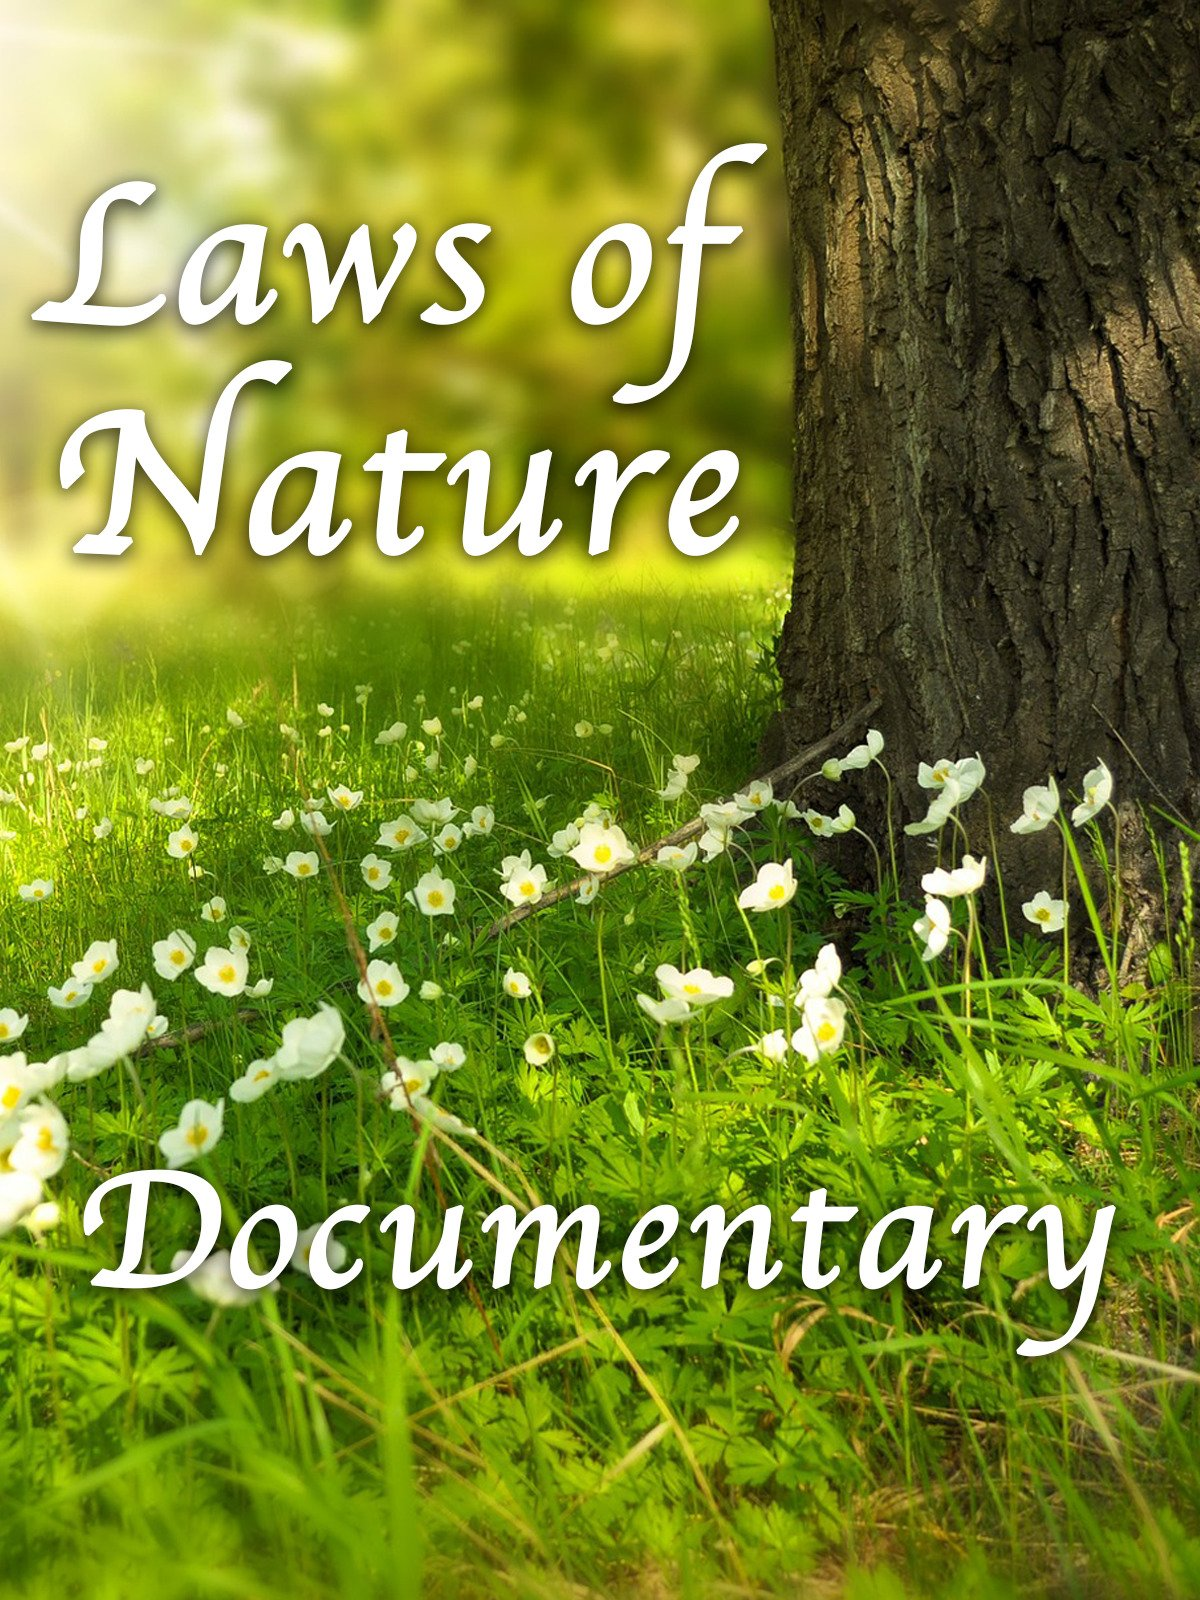 Laws of Nature Documentary